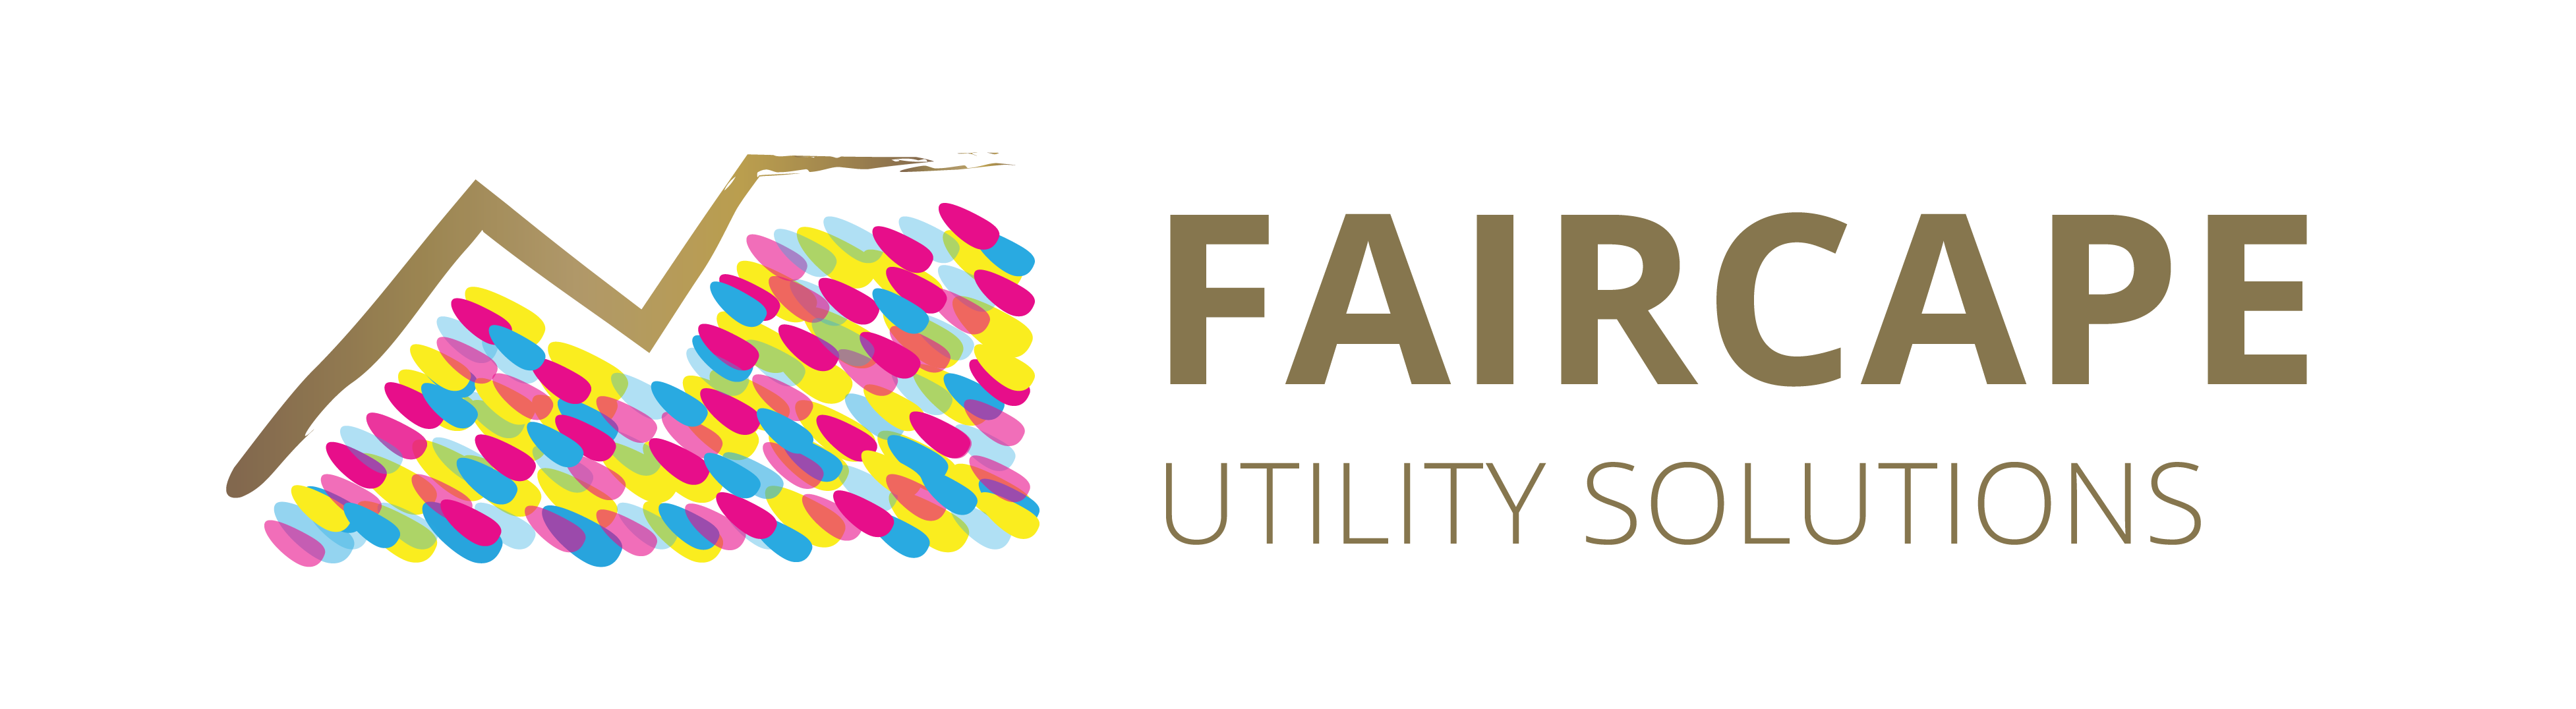 Faircape Utility Solutions